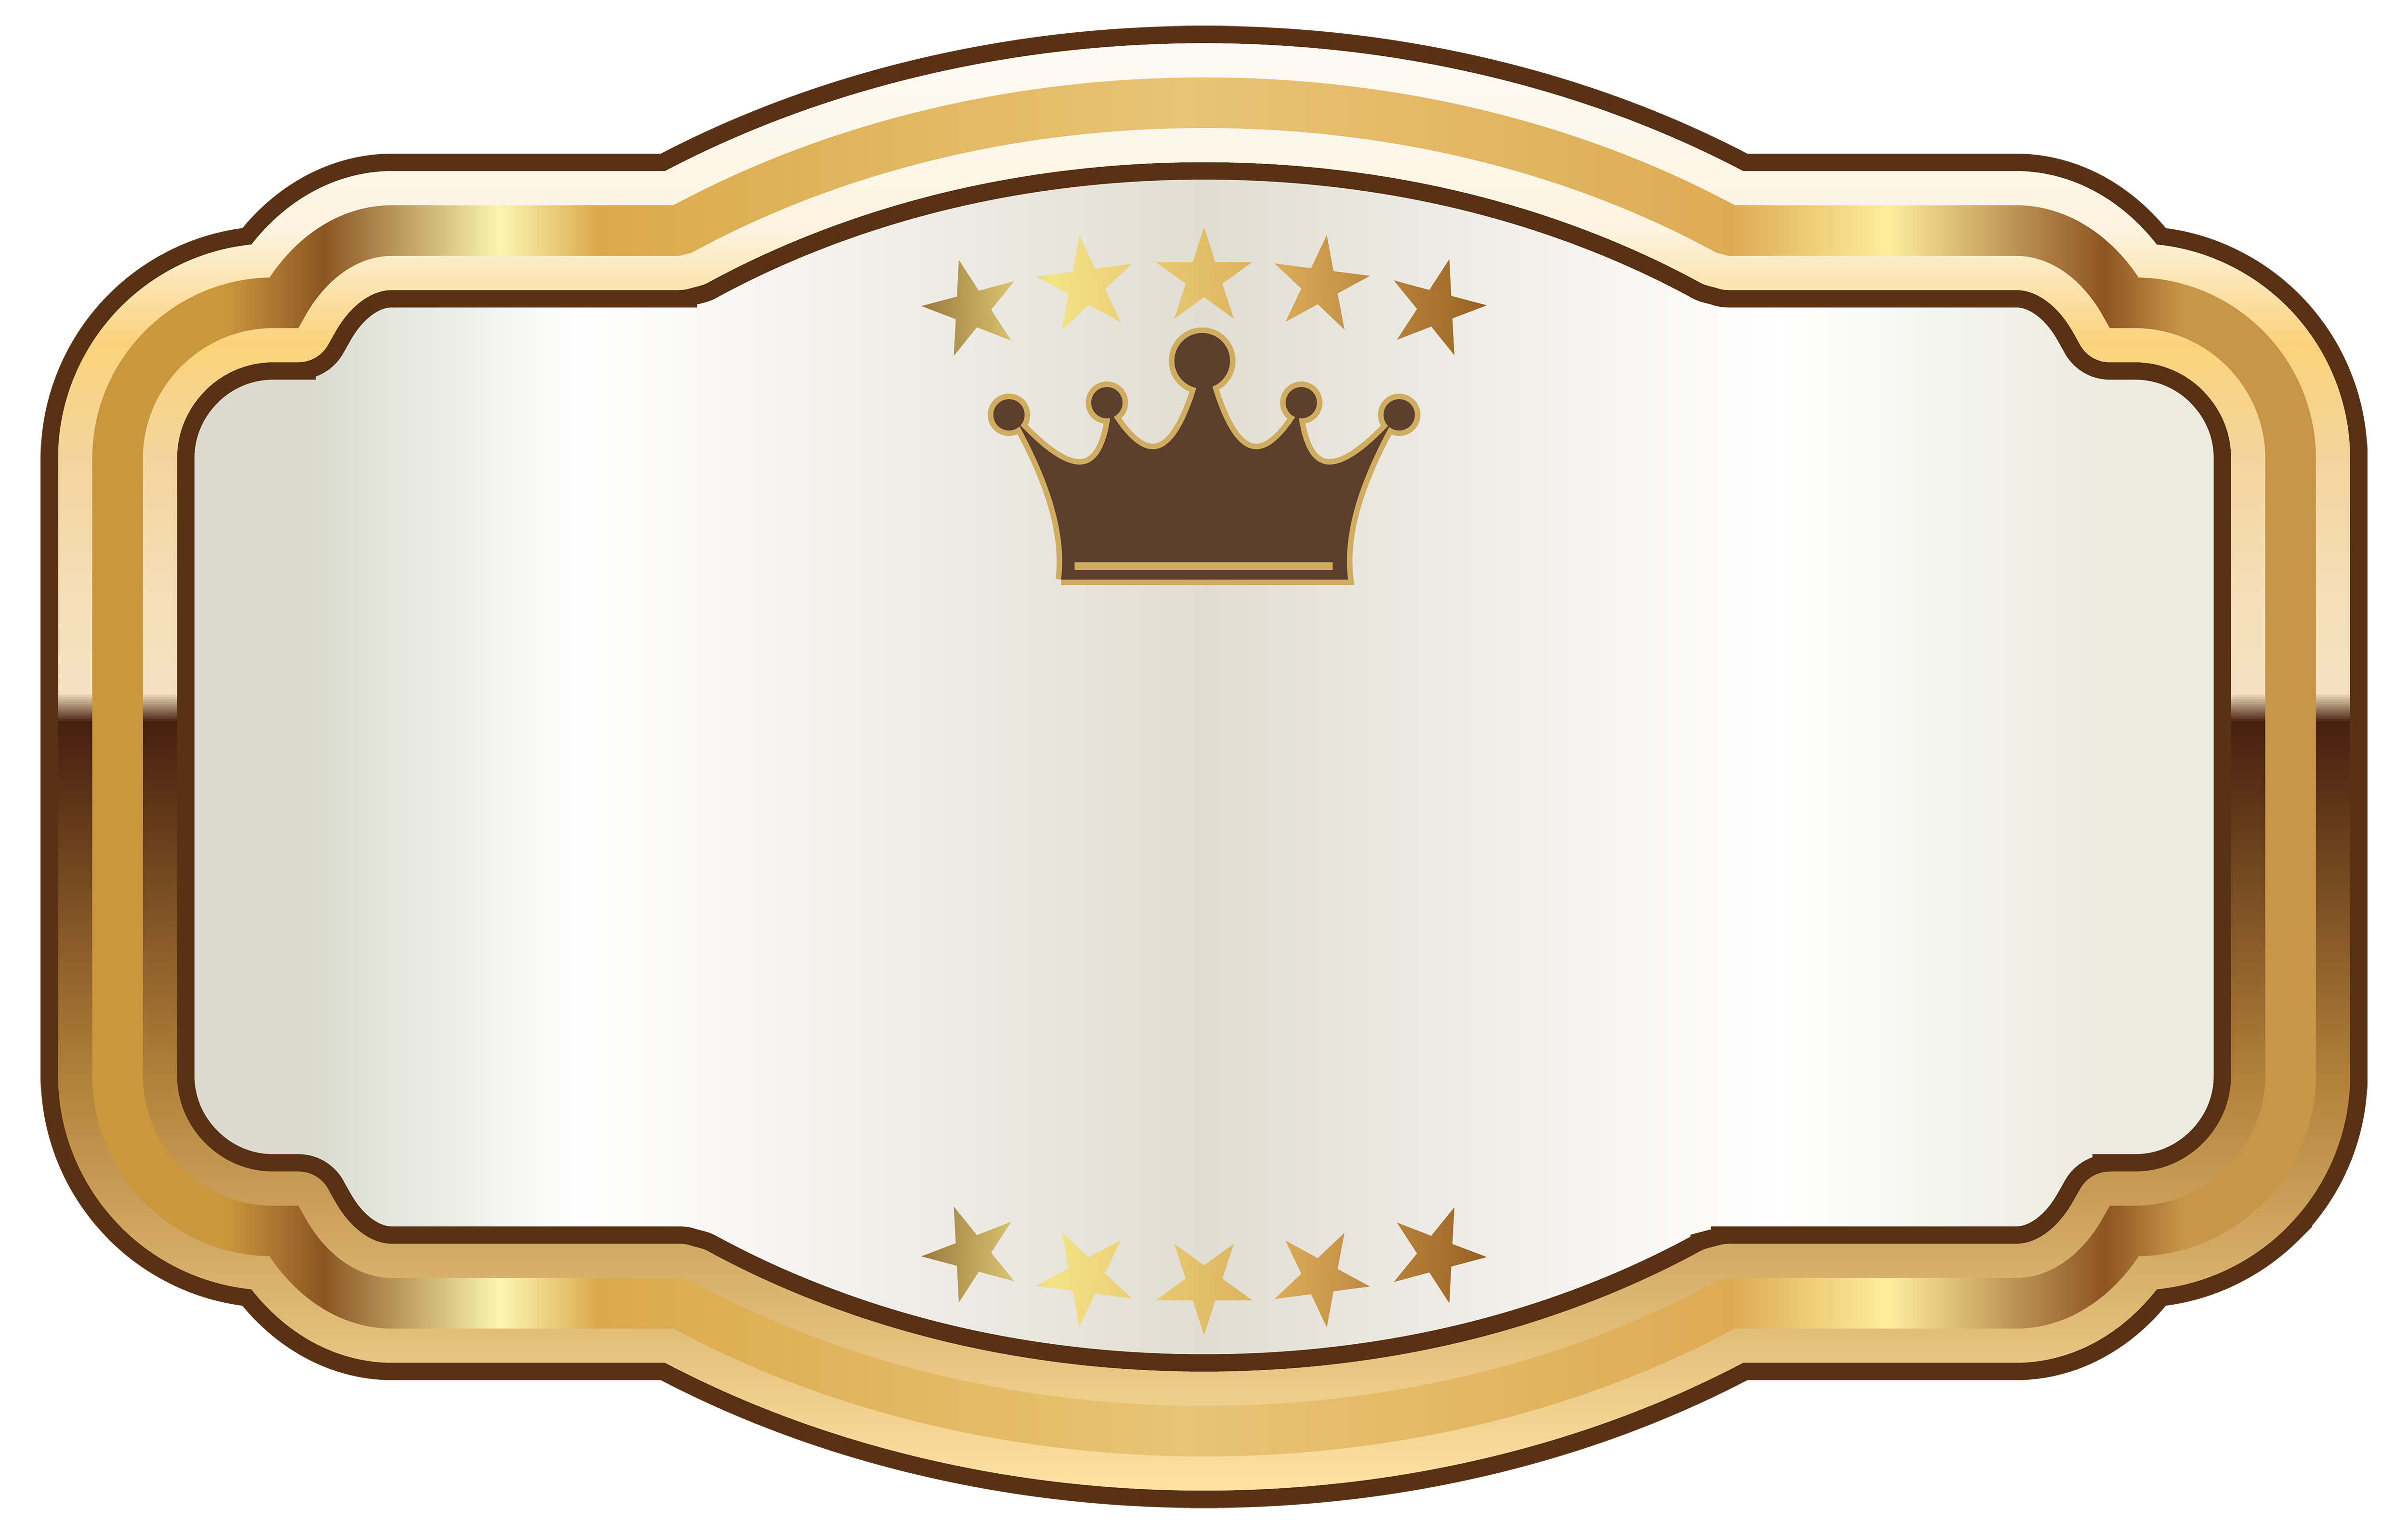 Crown clipart white png image free White Label with Gold Crown PNG Clipart Image | Gallery ... image free